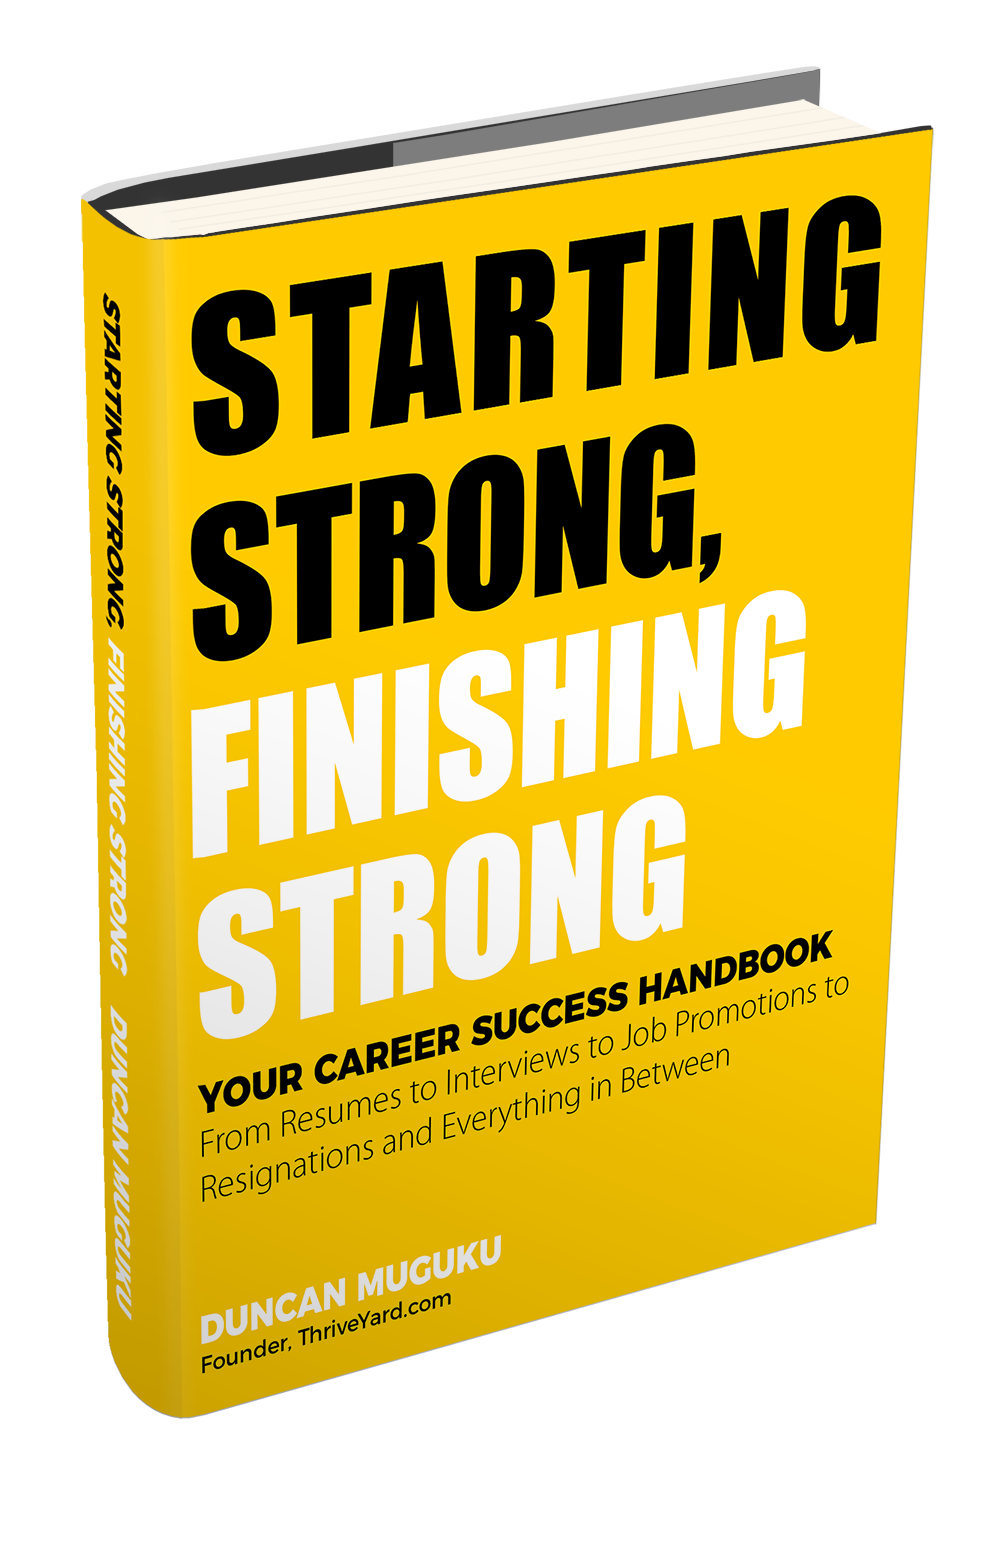 STARTING STRONG, FINISHING STRONG: Your Career Success Handbook, From Resumes to Interviews to Job Promotions to Resignations and Everything in Between (EBook) - Duncan Muguku, Founder, ThriveYard.com